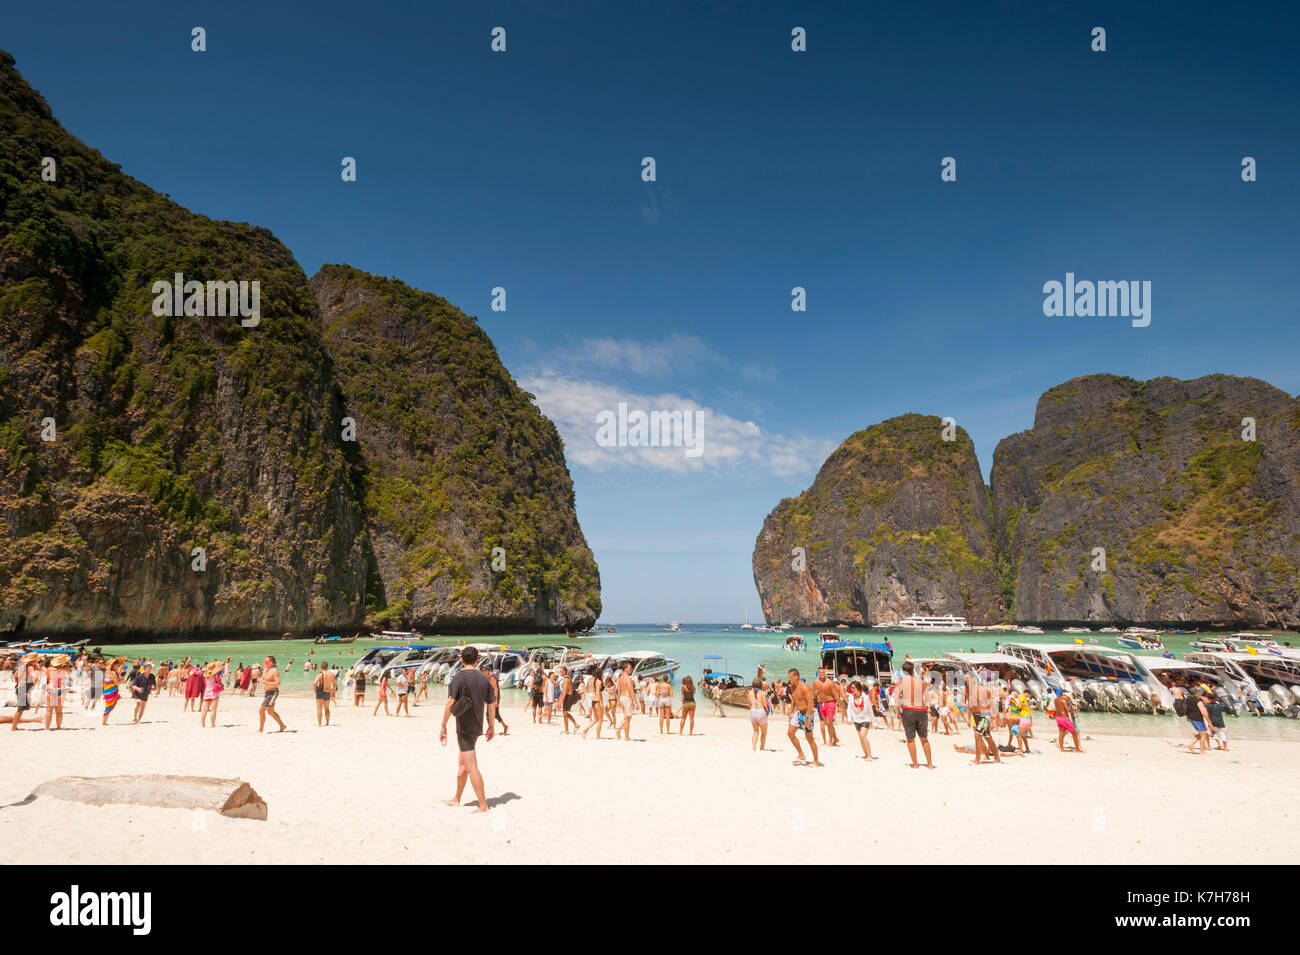 Tourists at Maya Bay, Ko Phi Phi Lee Island, Thailand. - Stock Image